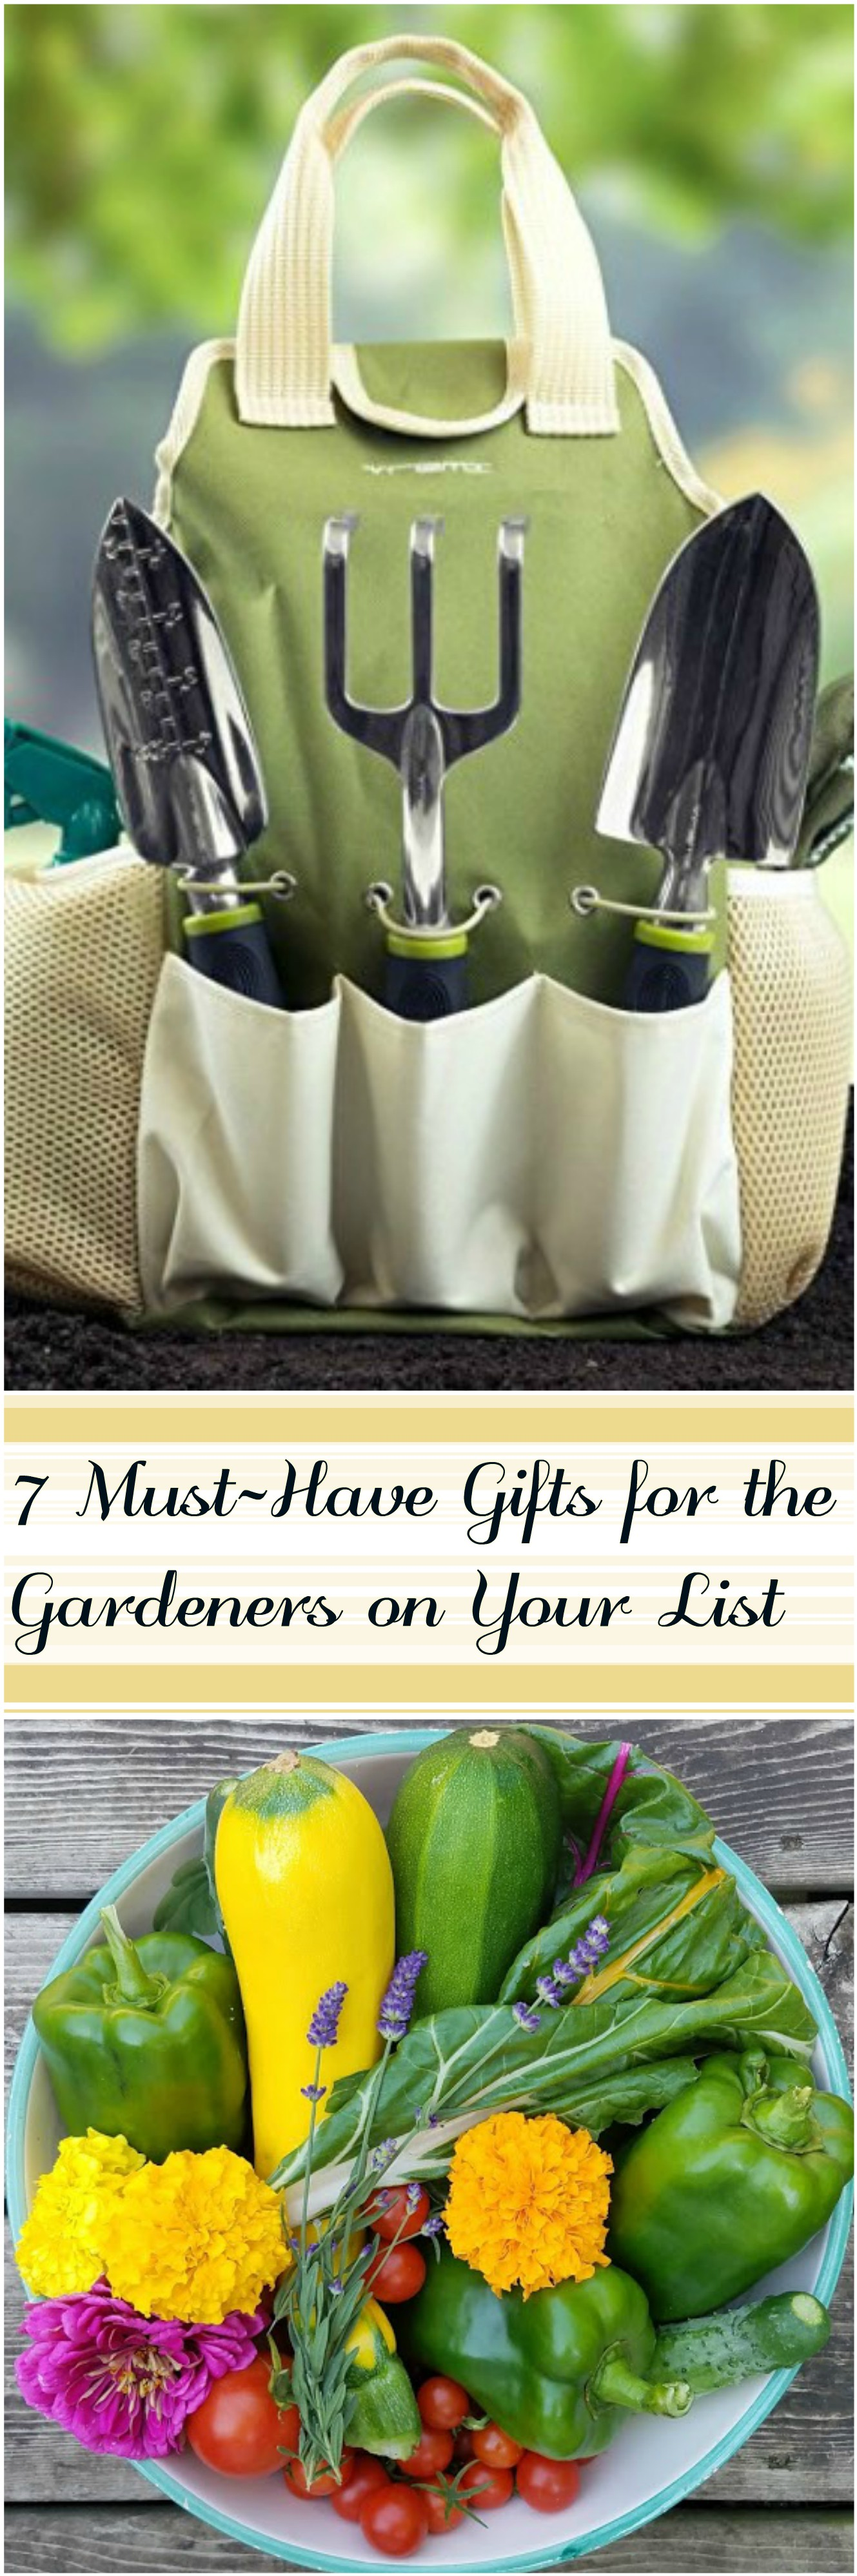 on of who by for gifts star plant life the weed help gift garden dig your a everything homes gardener to gardening offering ideas have one gardeners give